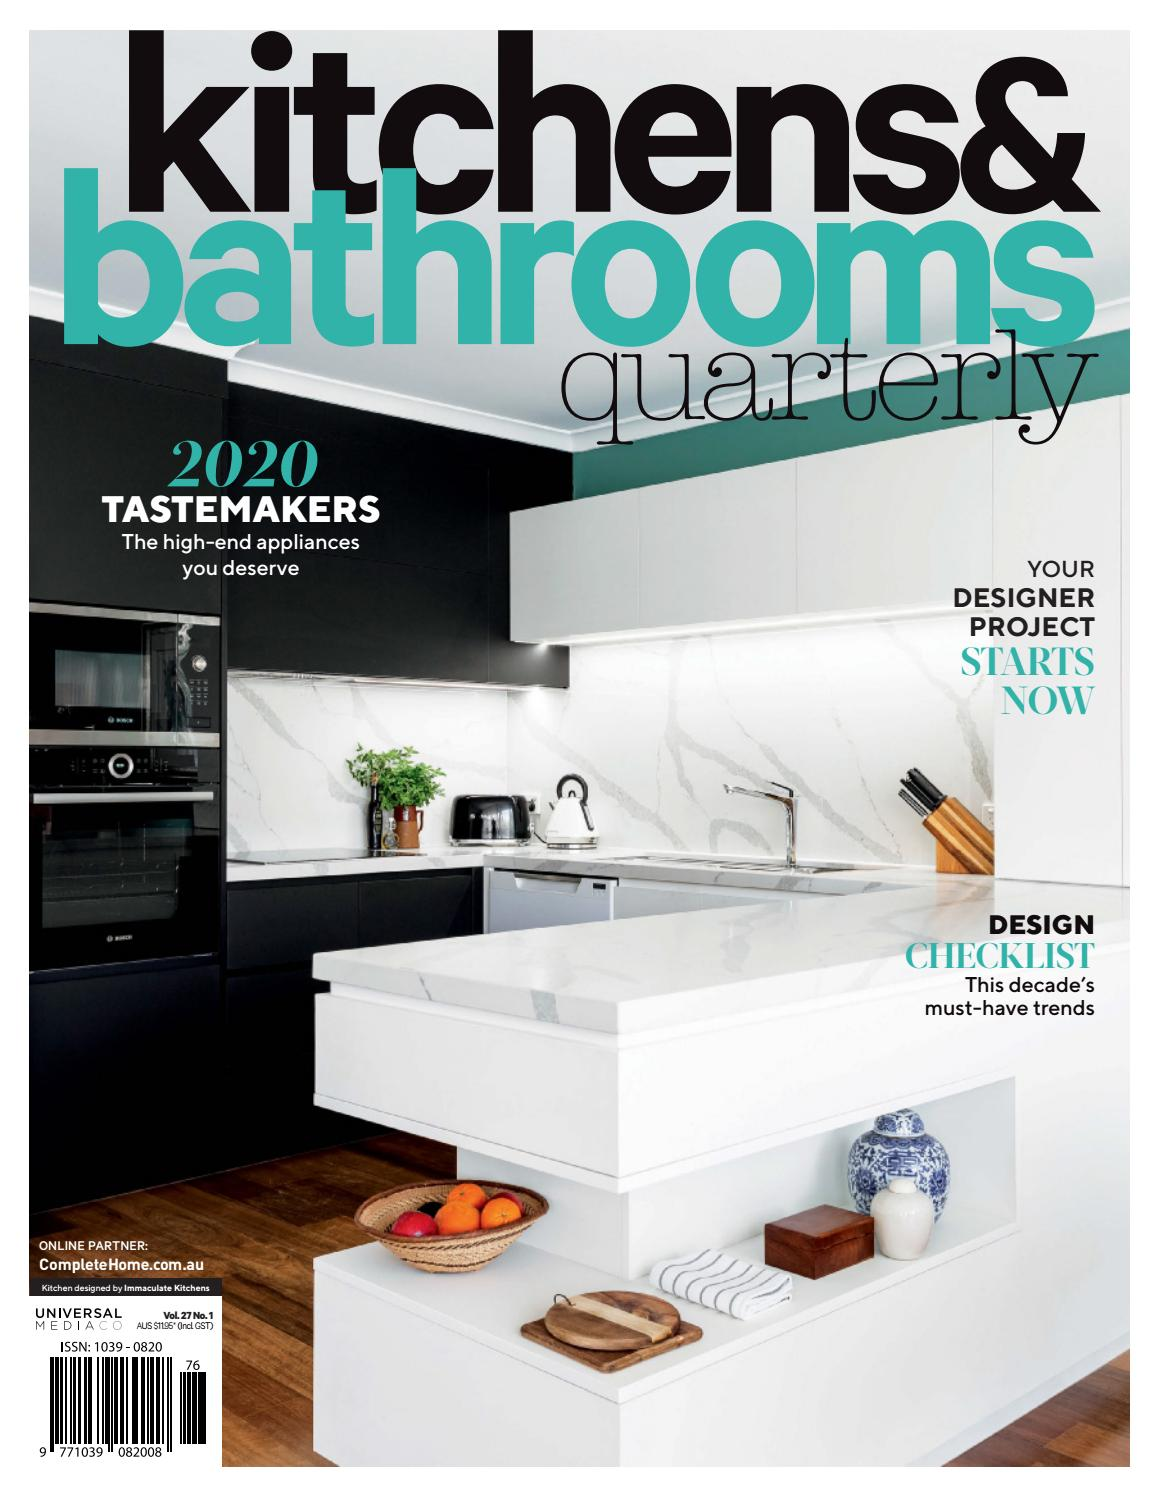 Kitchens Bathrooms Quarterly Qld 27 1 By Universal Media Co Issuu